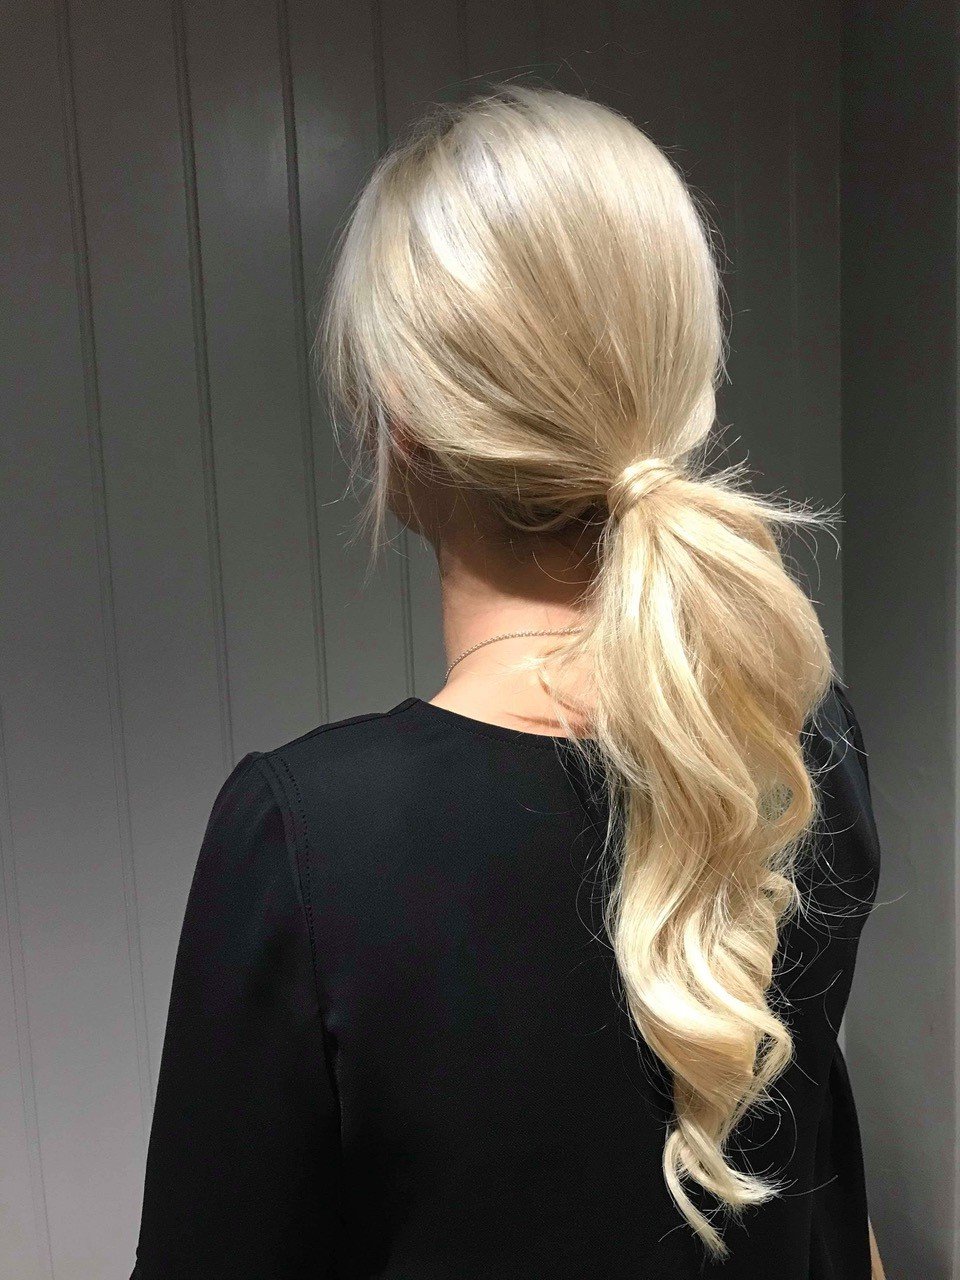 Widely Used Low Ponytail Hairstyles Within 3 Ways To Style A Low Ponytail Without Looking Like A (View 20 of 20)